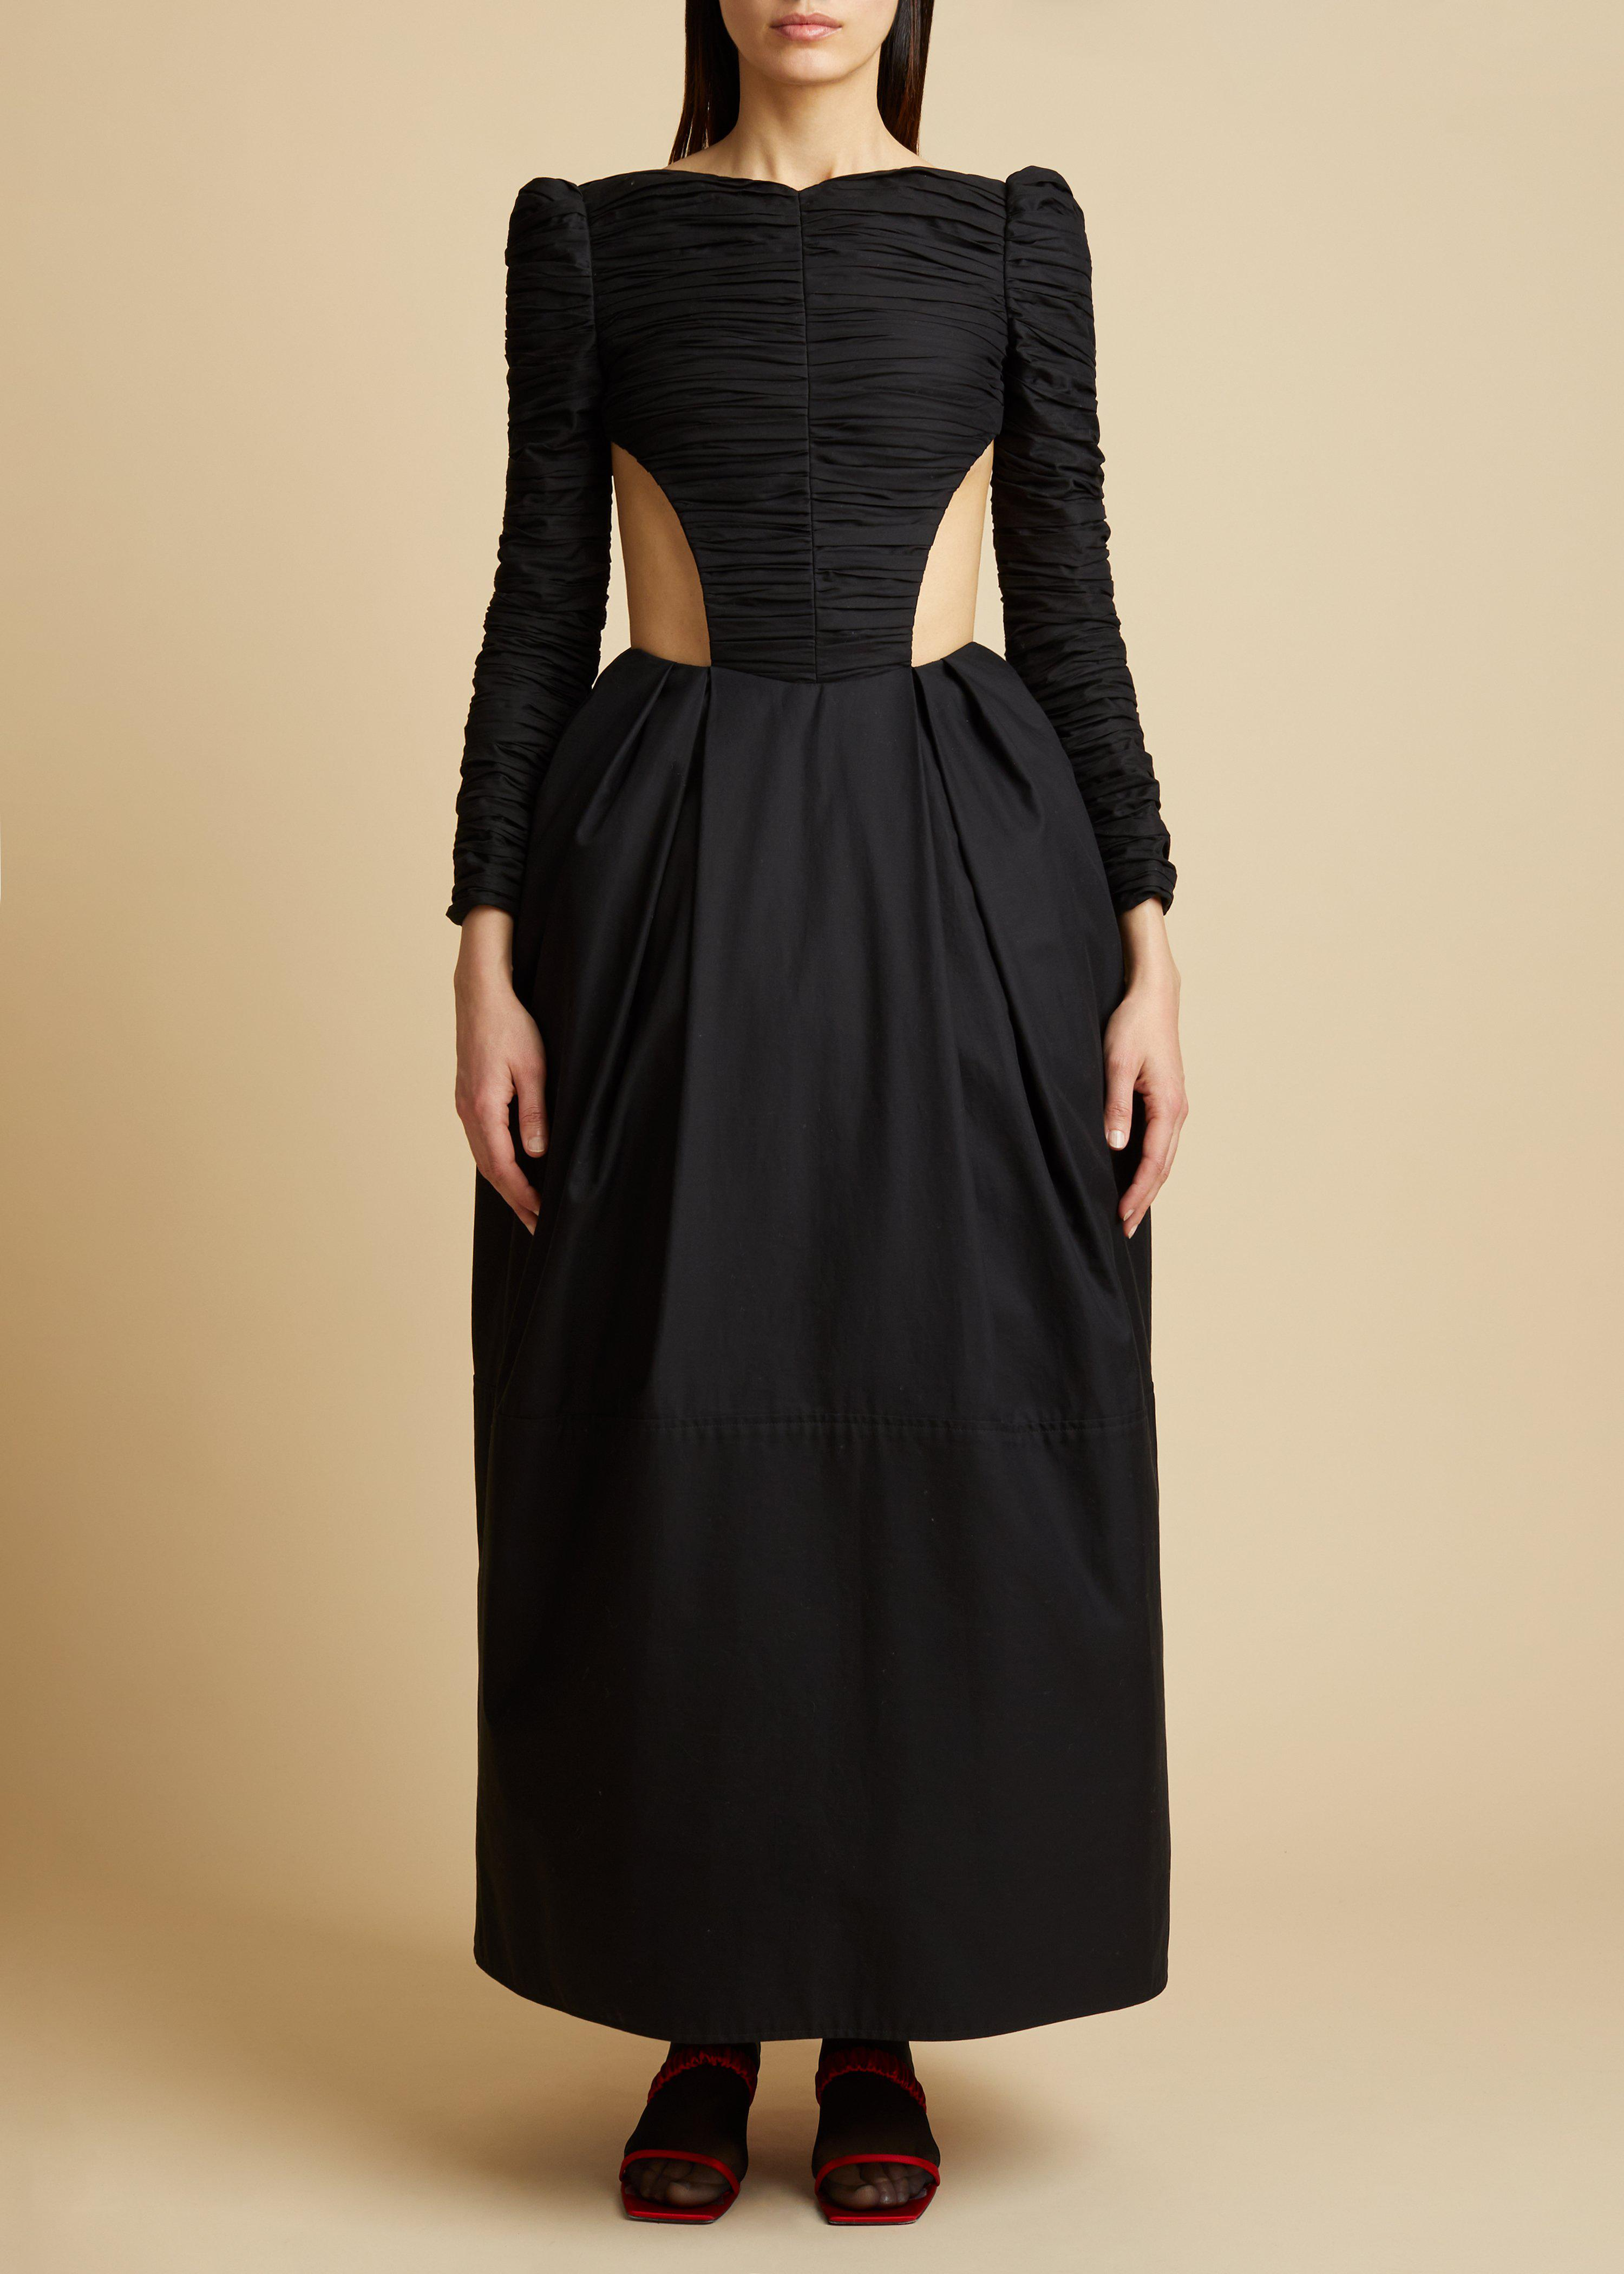 The Rosaline Dress with Petticoat in Black 1